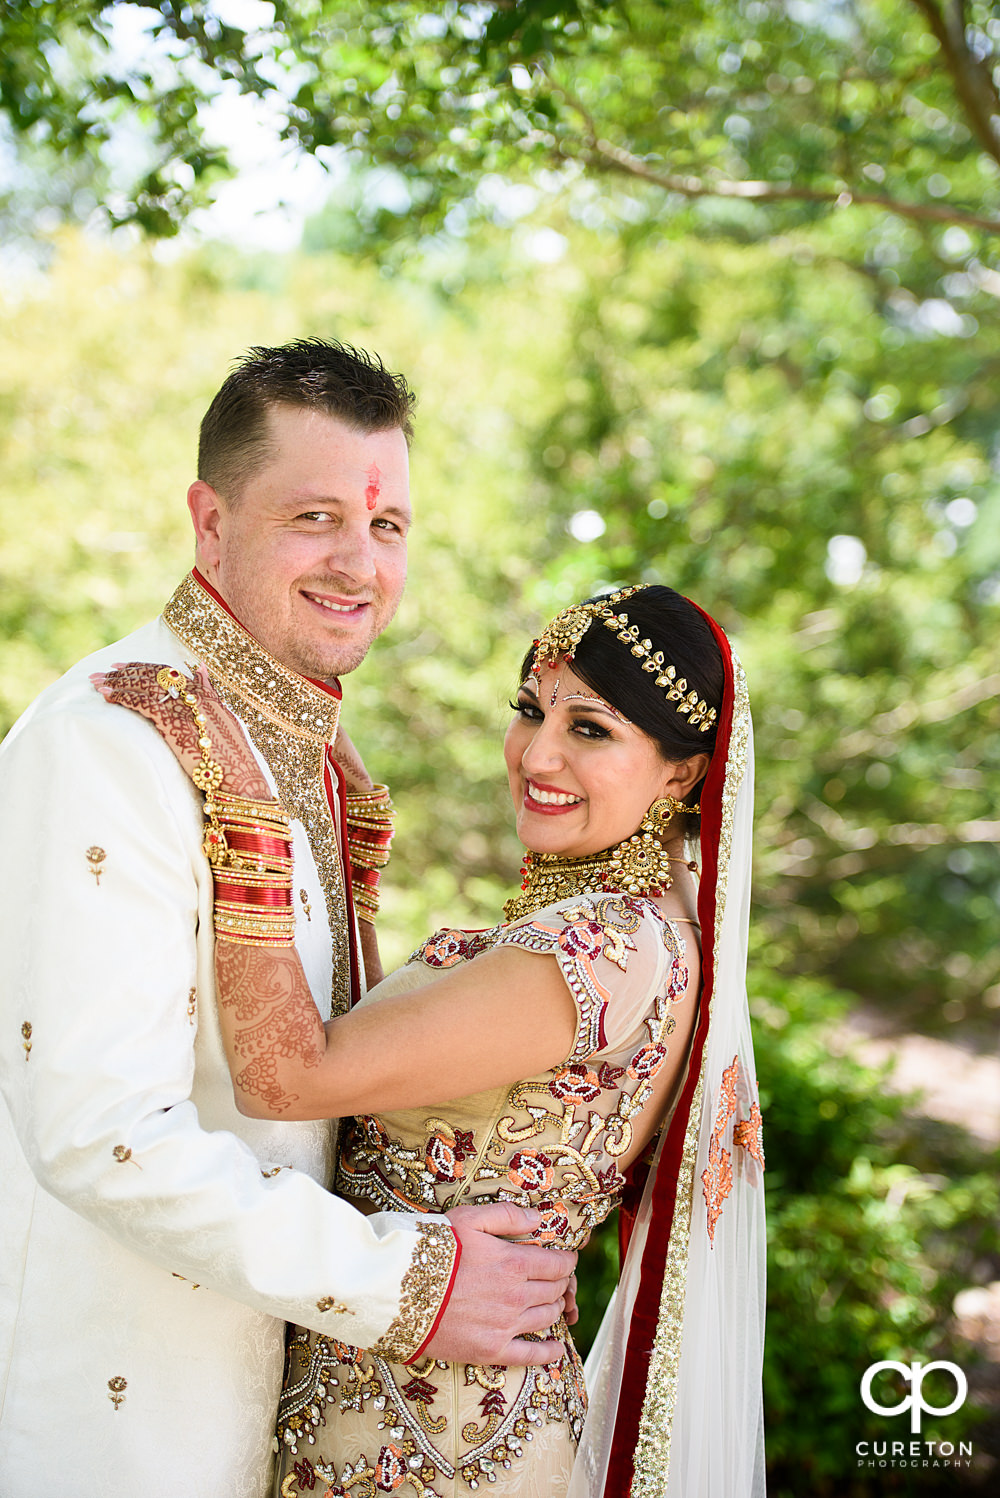 Indian bride and American groom.